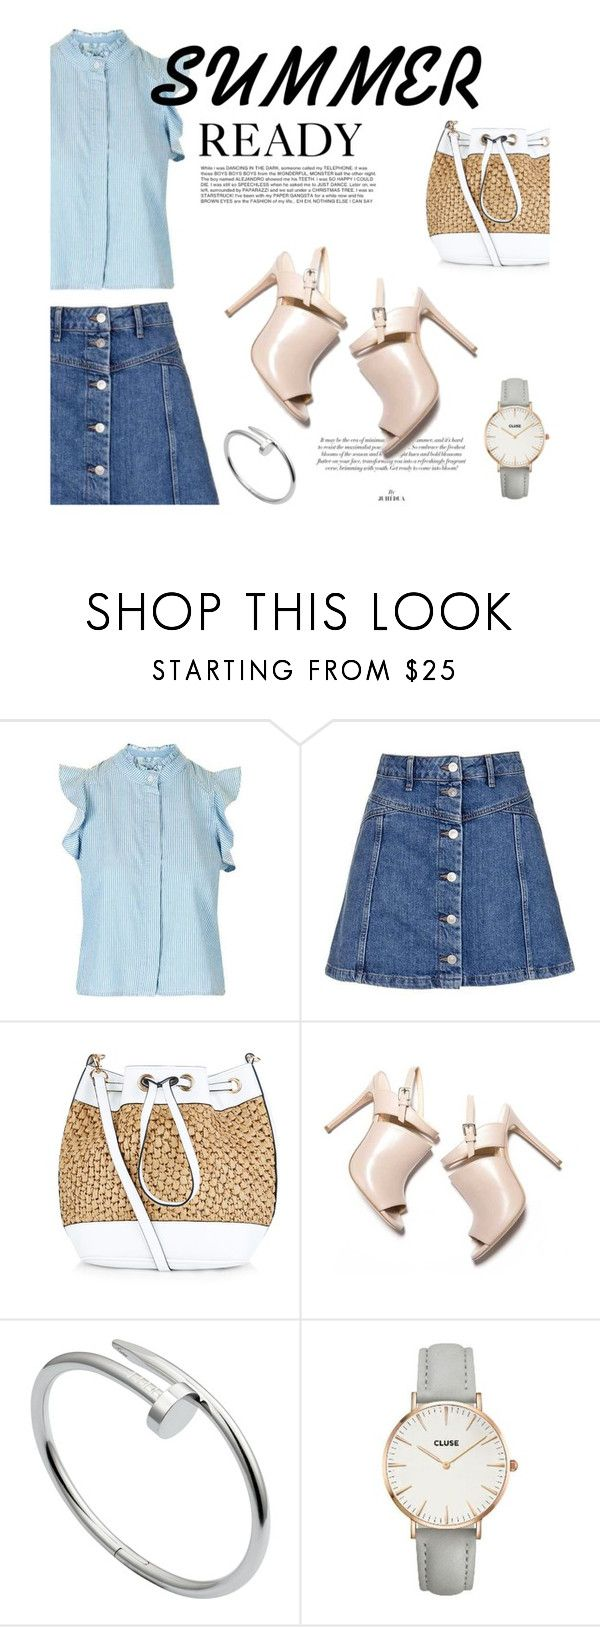 """""""Summer Ready: Frill Blouse"""" by tracey-mason ❤ liked on Polyvore featuring Topshop, New Look, Cartier and CLUSE"""